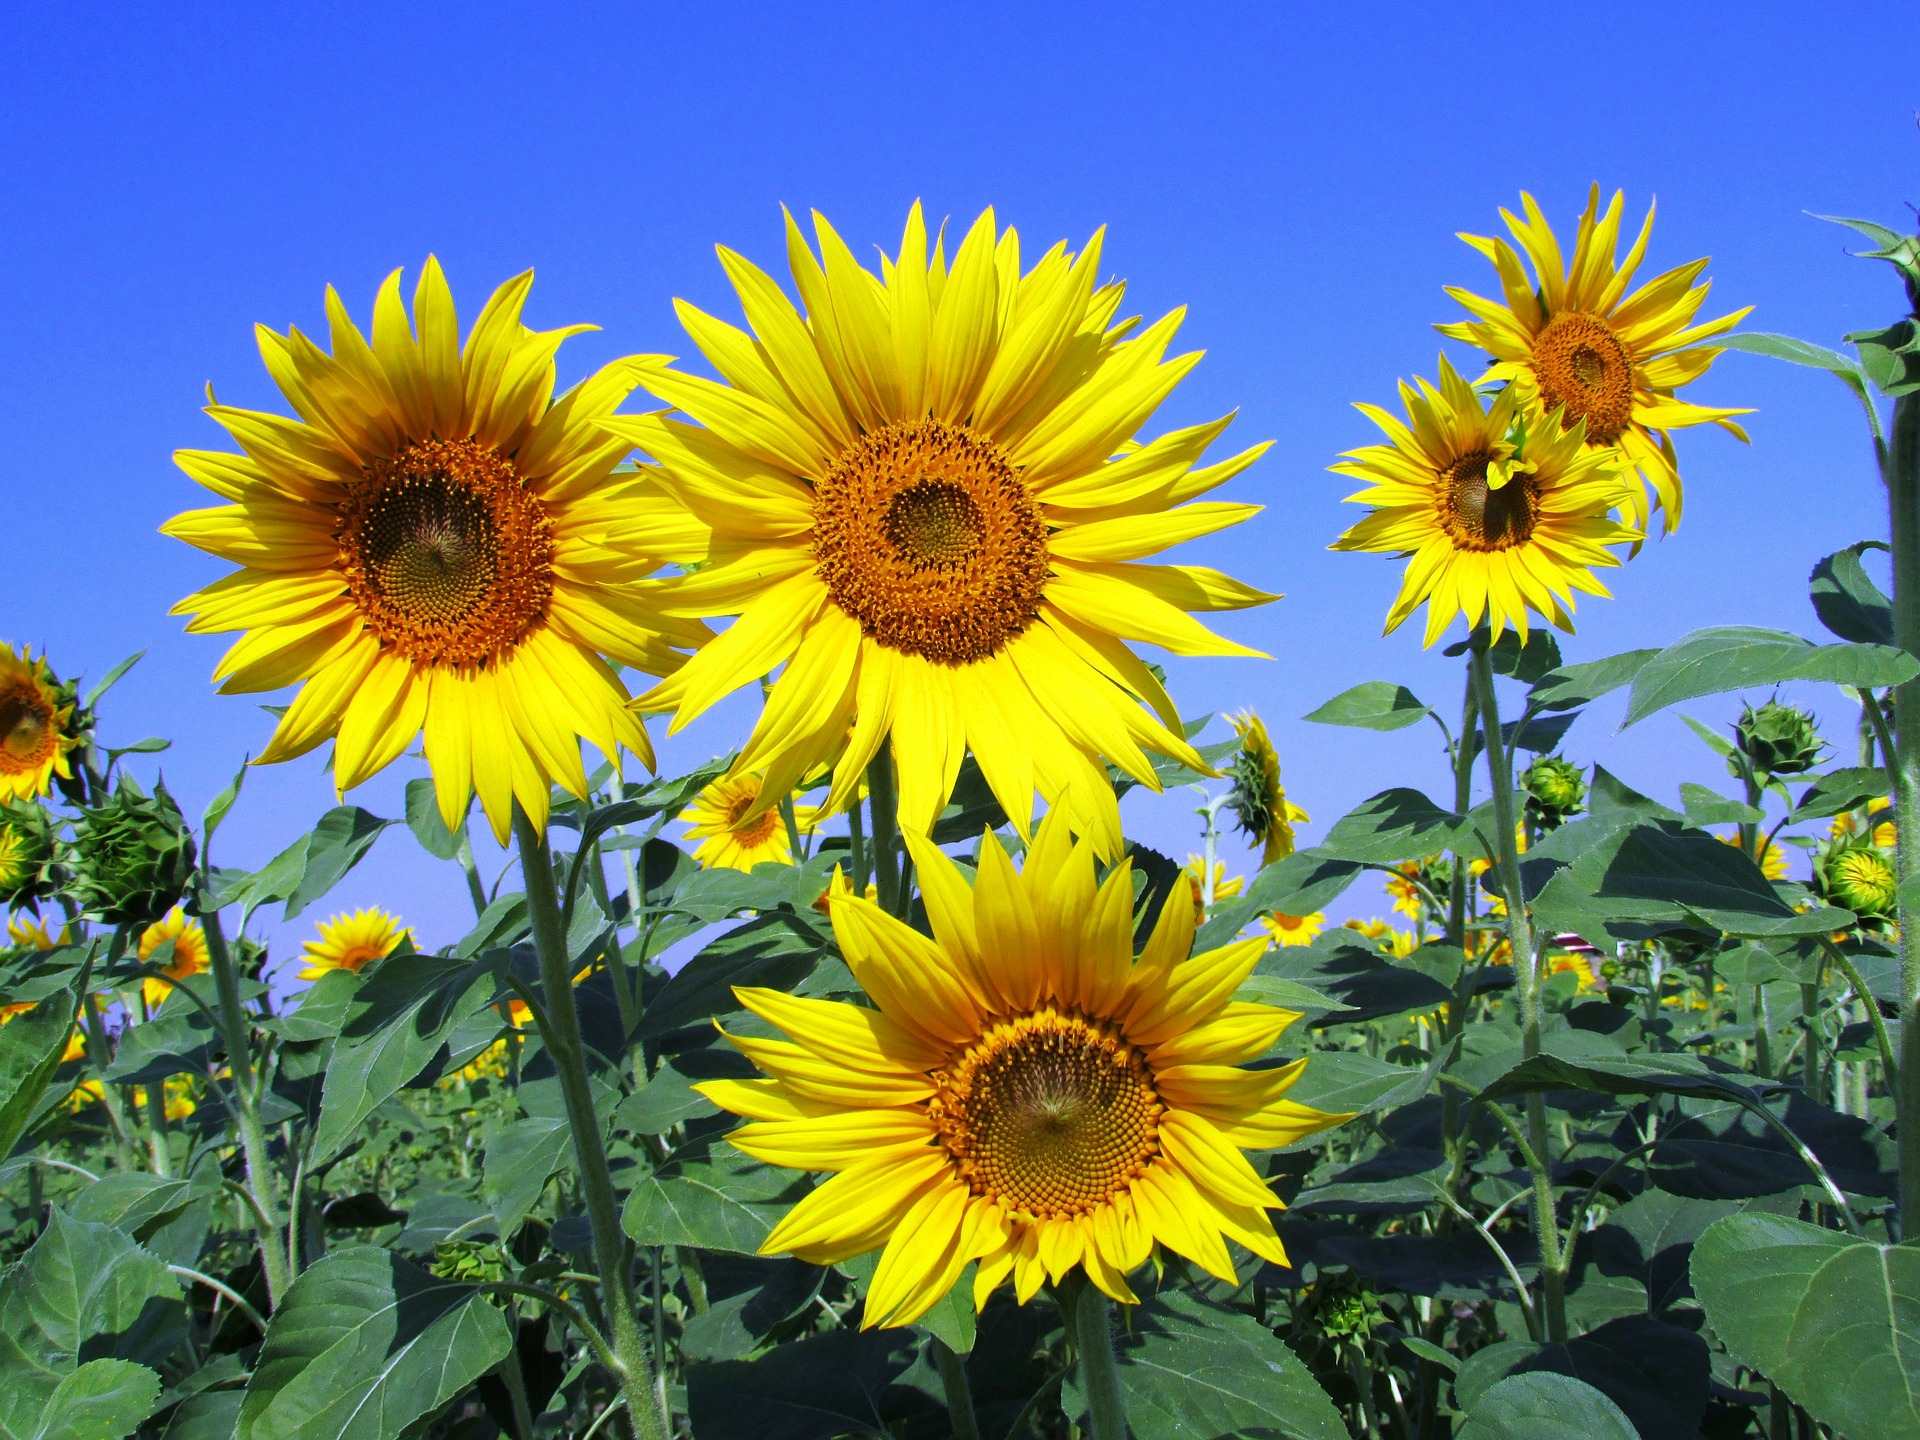 sunflowers-268015_1920.jpg